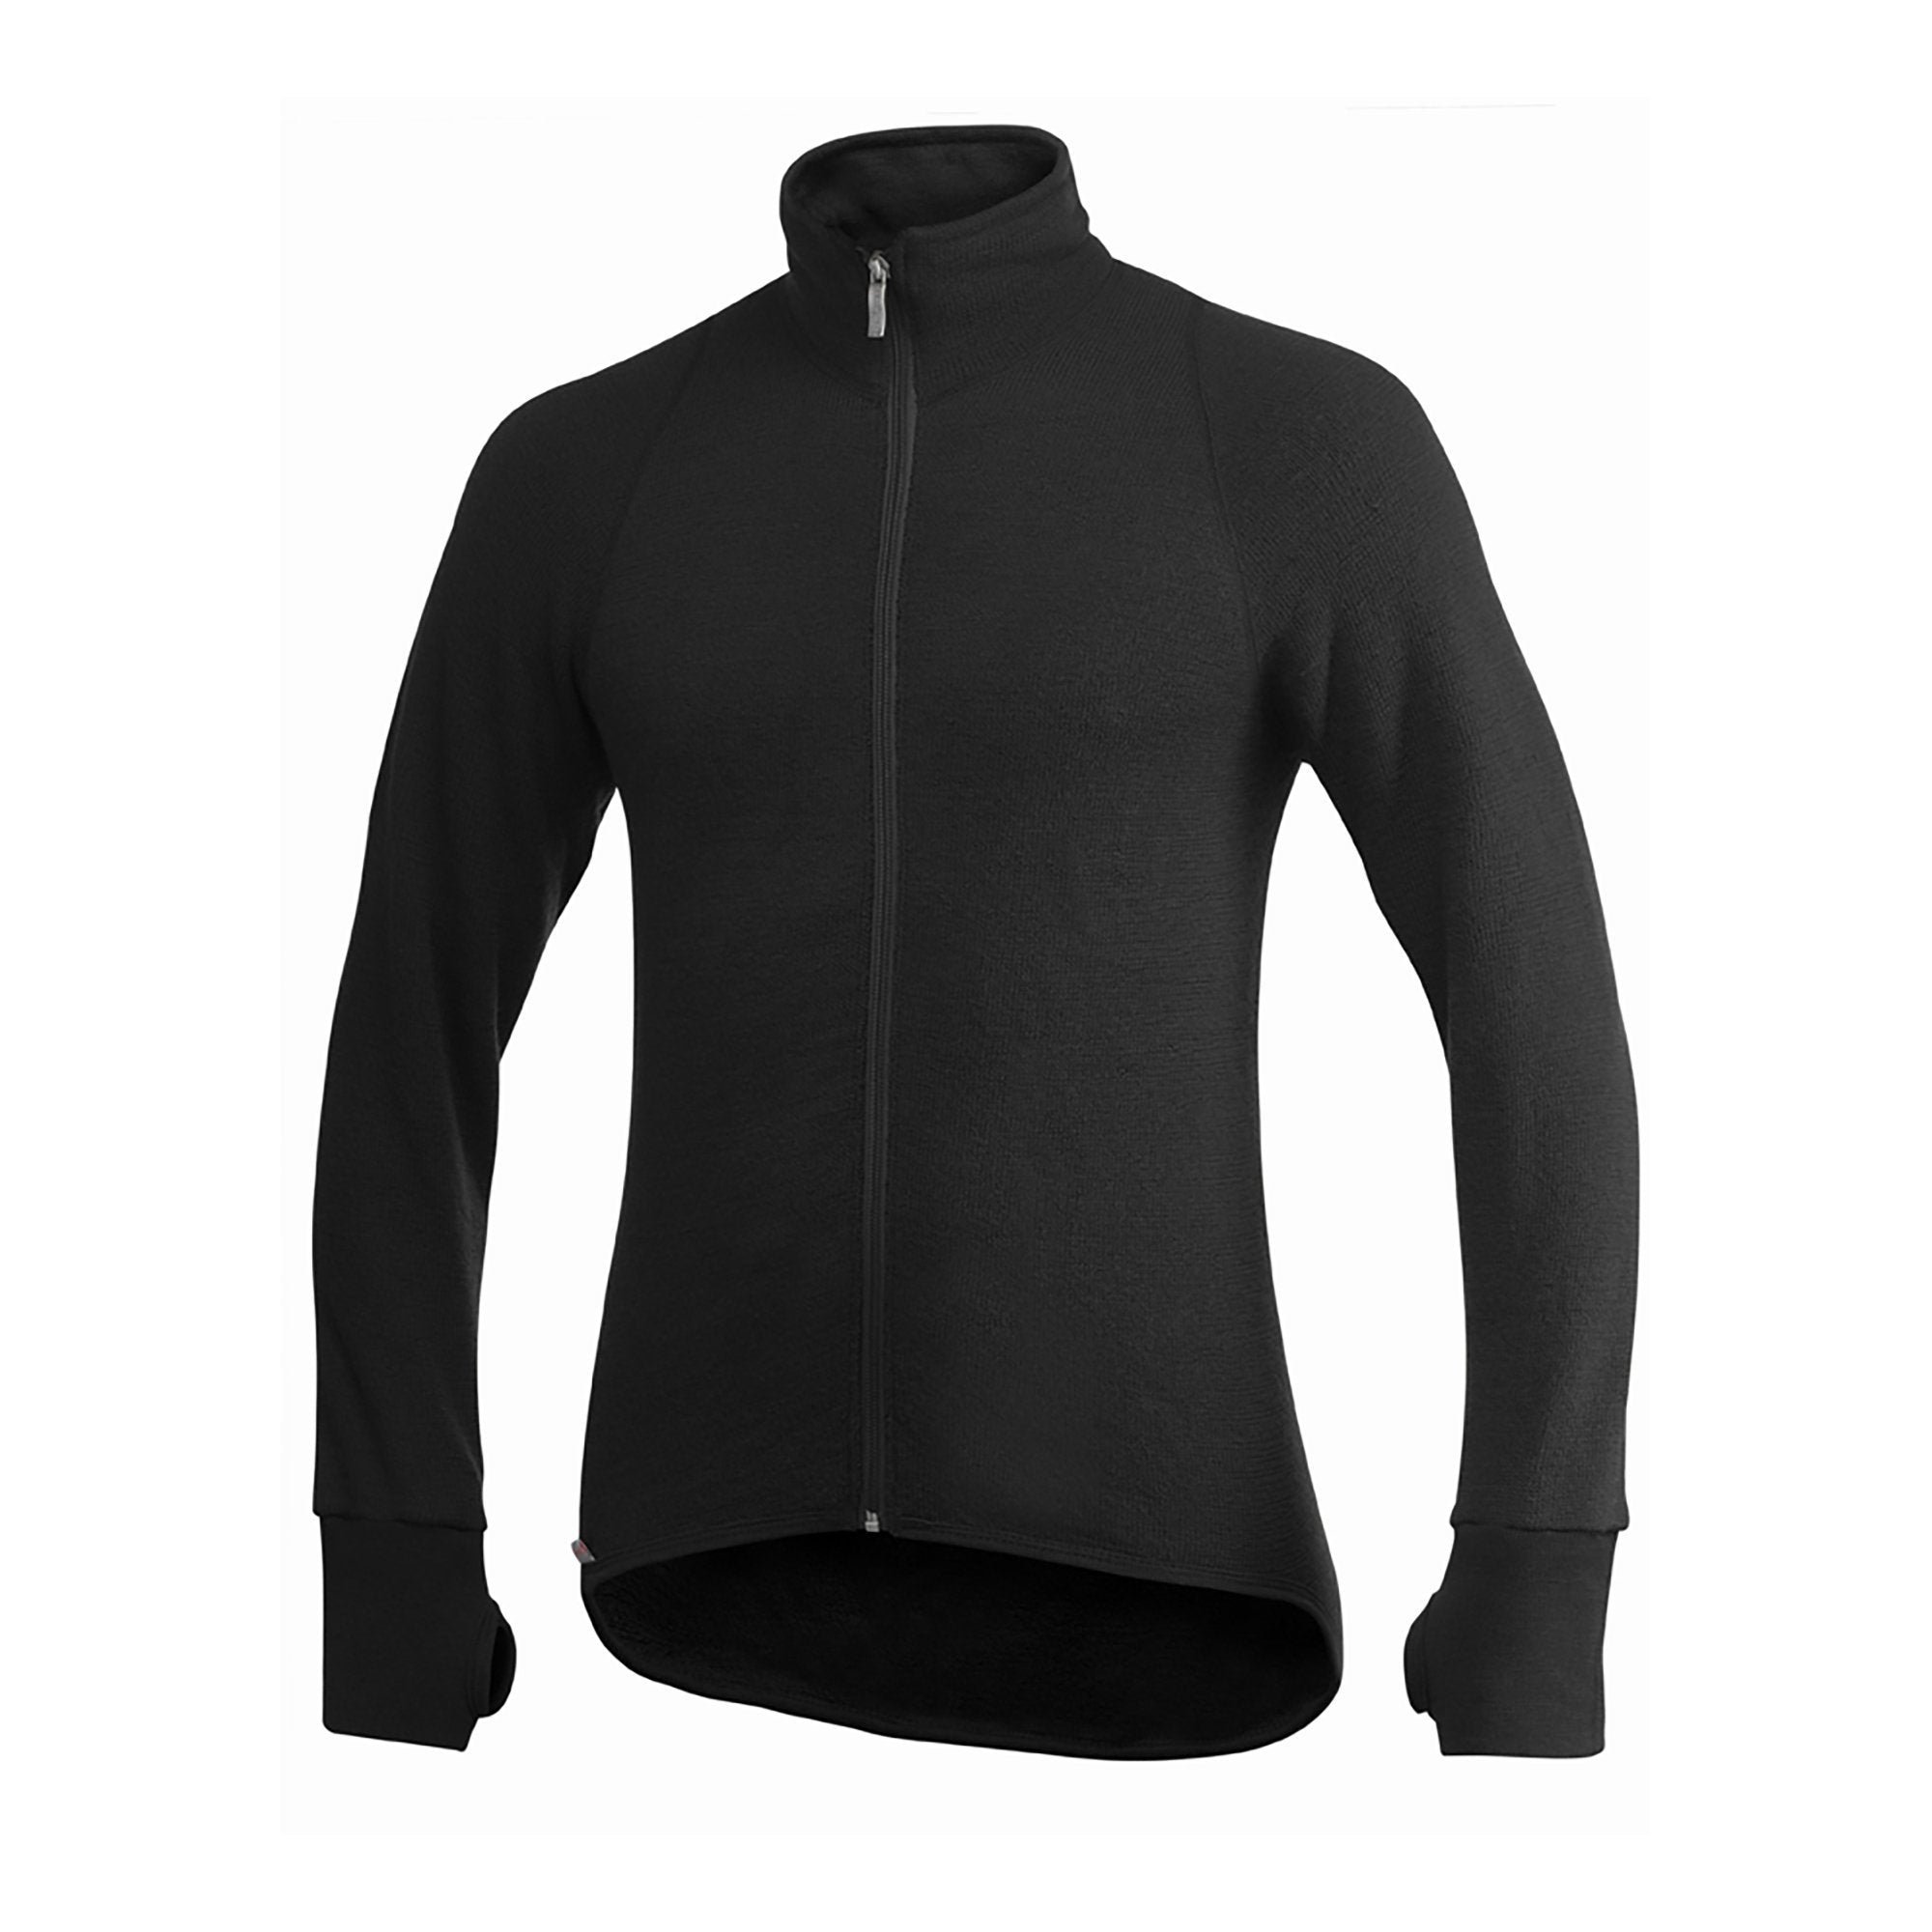 Full Zip Jacket 400 - Black - Unisex - Vindpinad